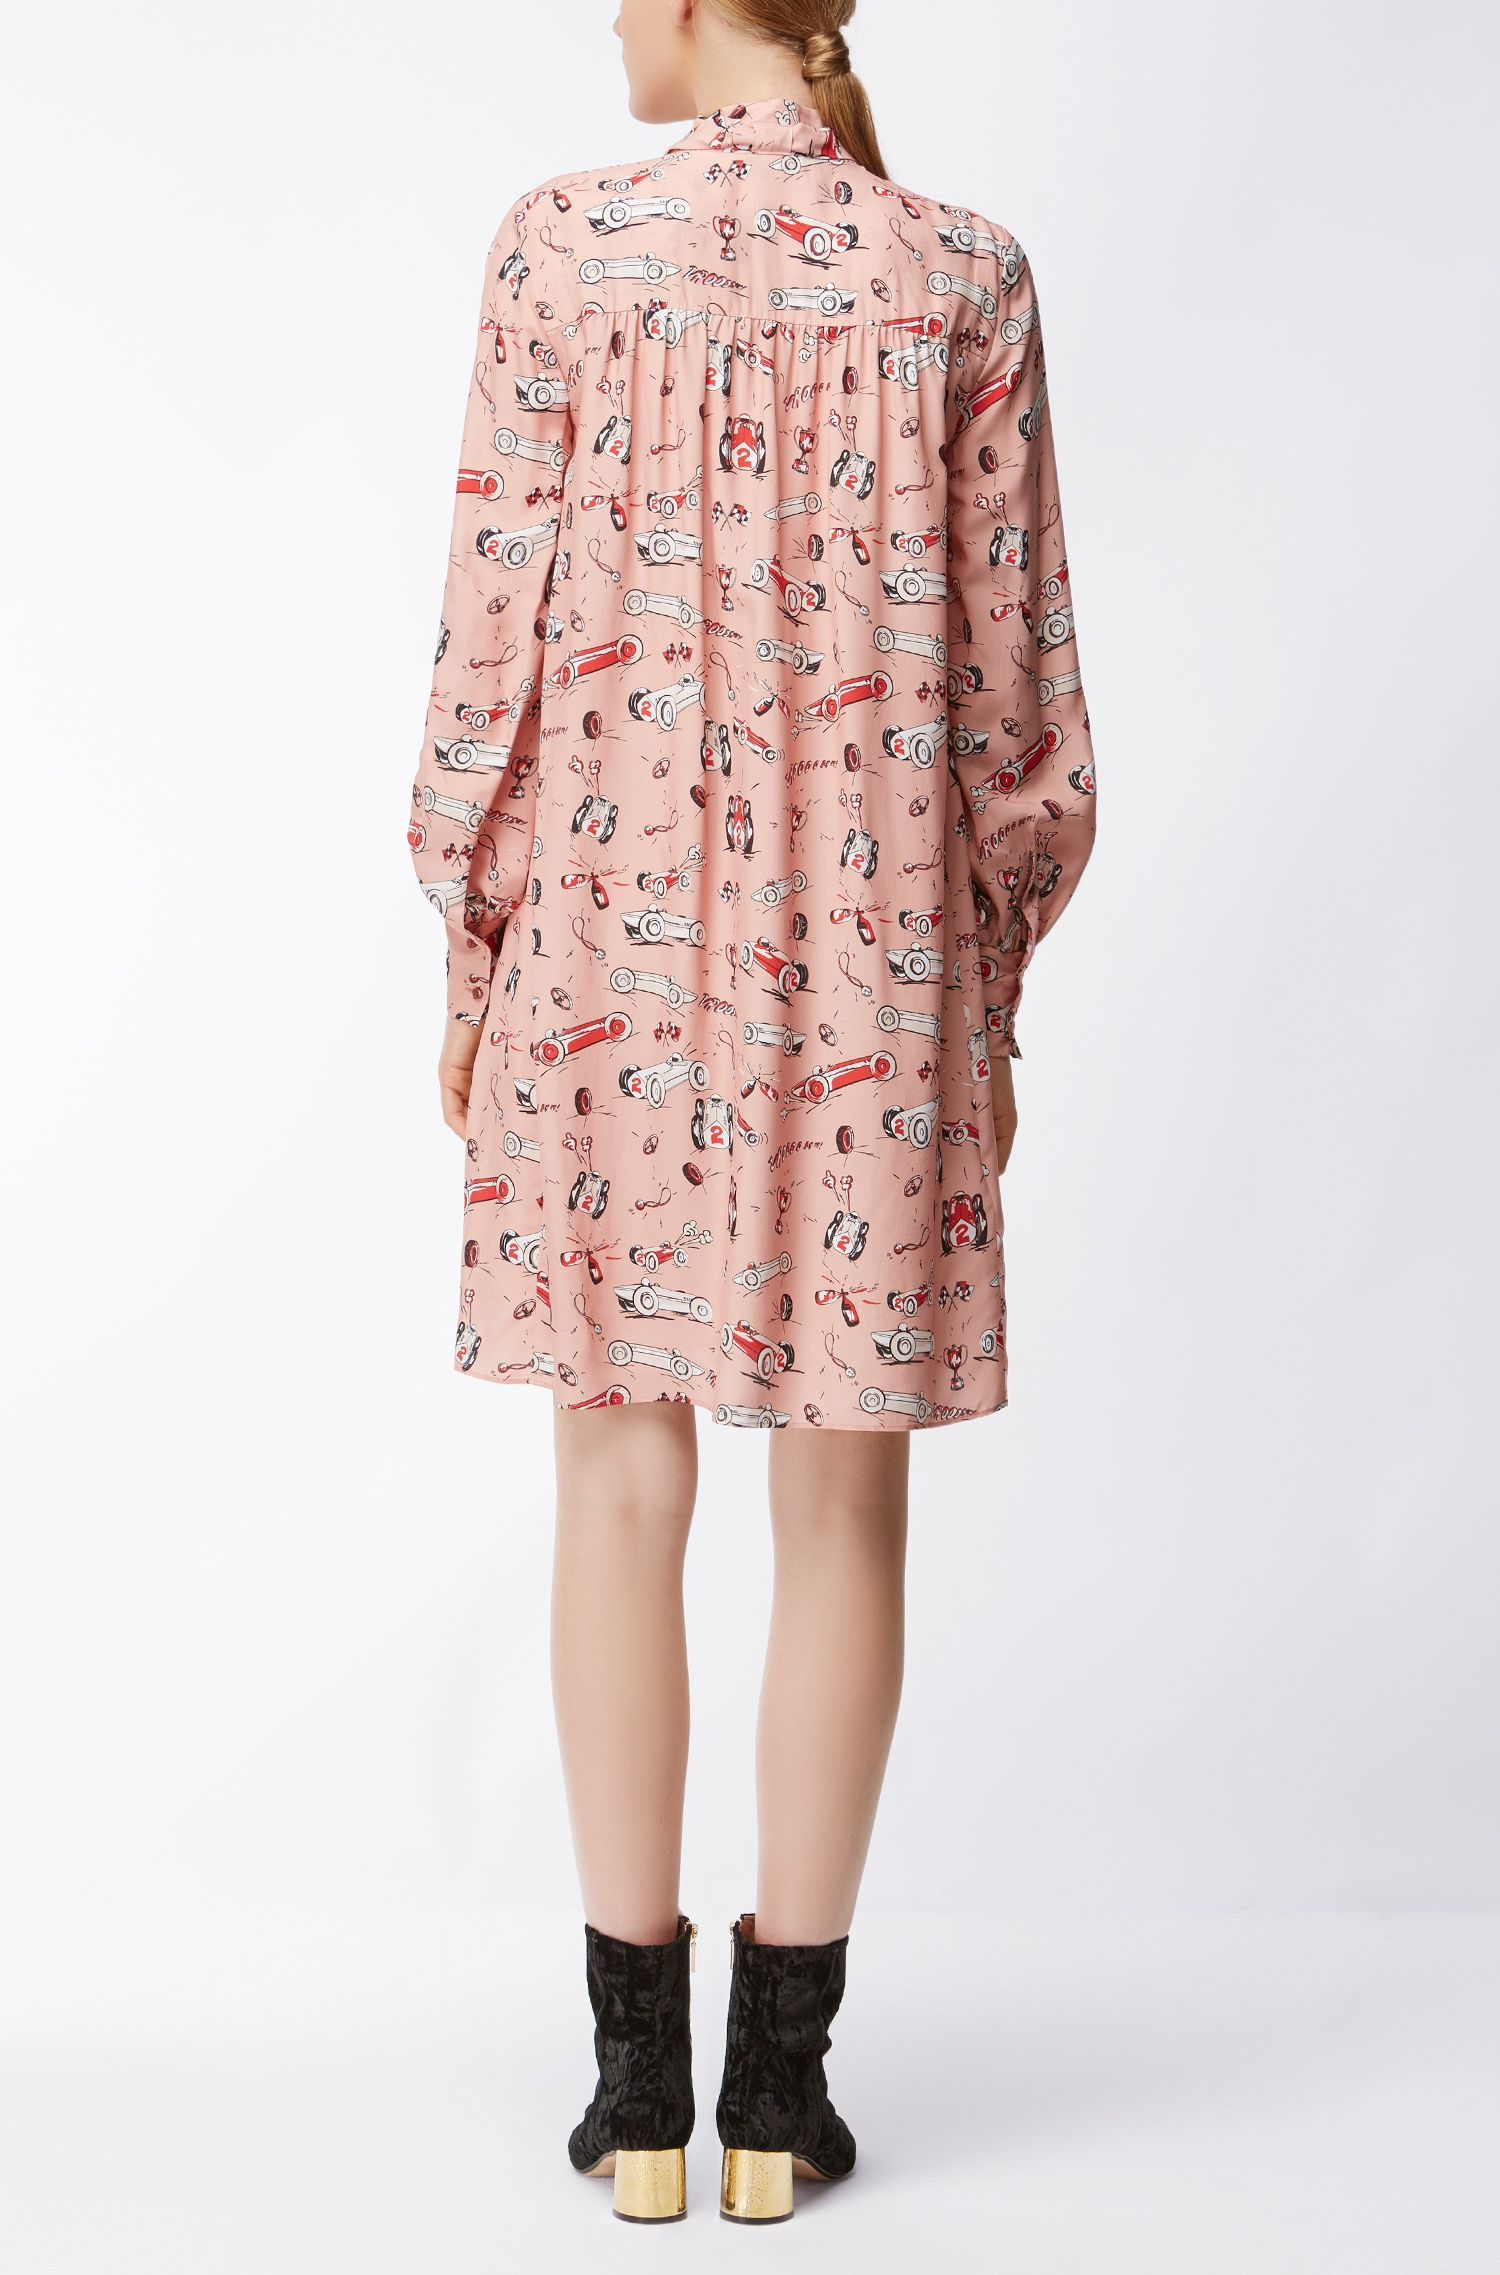 Race Car Viscose Shirtdress | Dowidana, Patterned